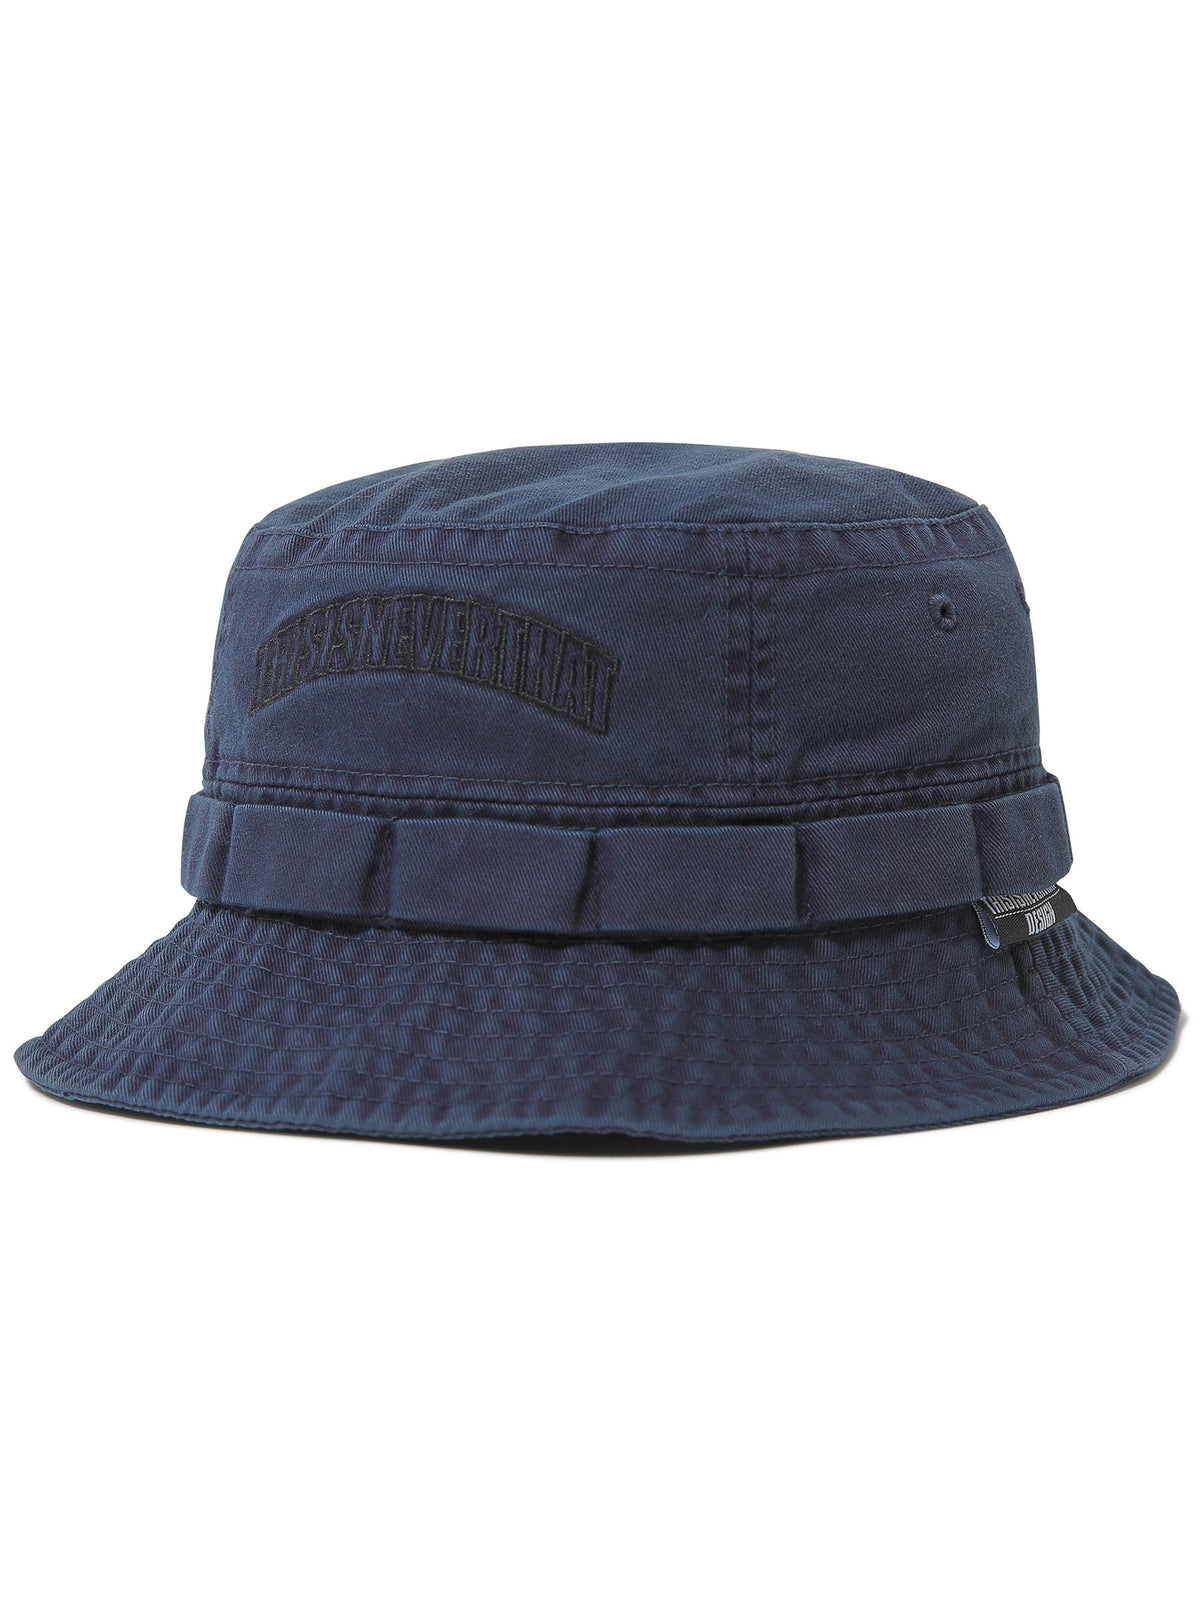 Overdyed Jungle Bucket Hat - thisisneverthat